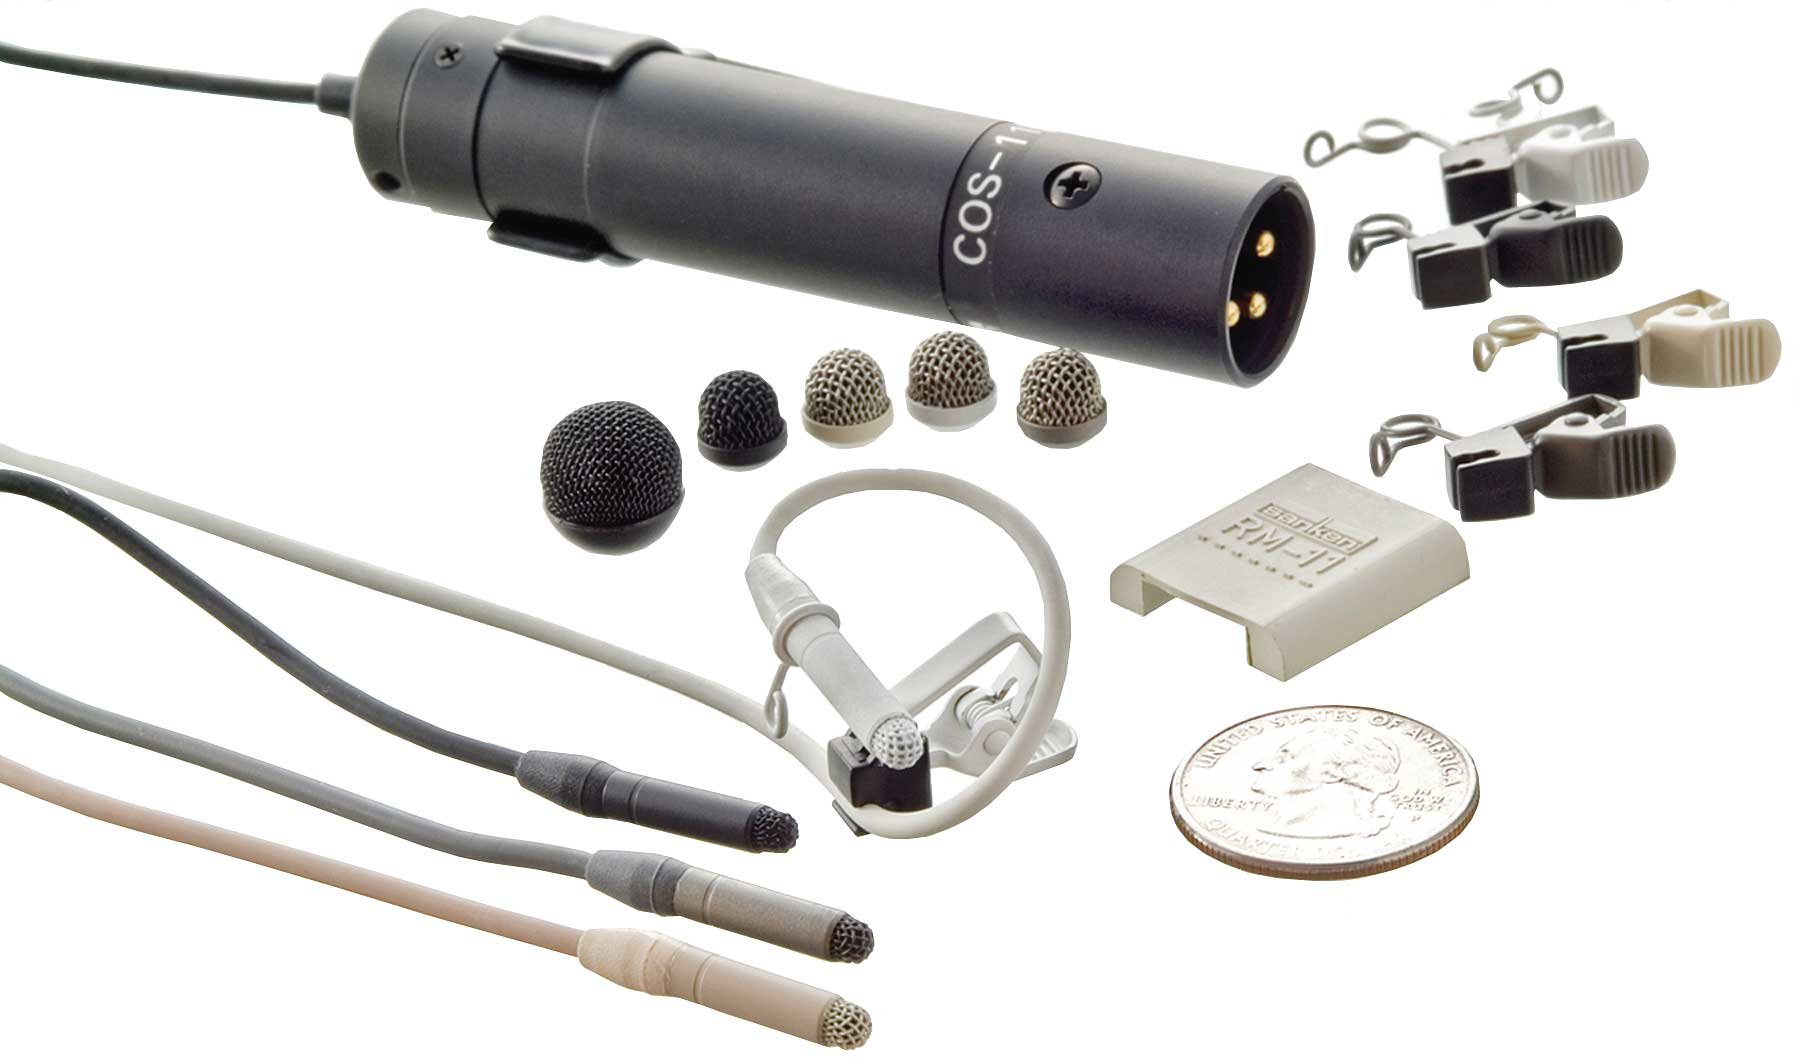 Miniature Lavalier Microphone with a TA5 Connector and 1.8m Cable